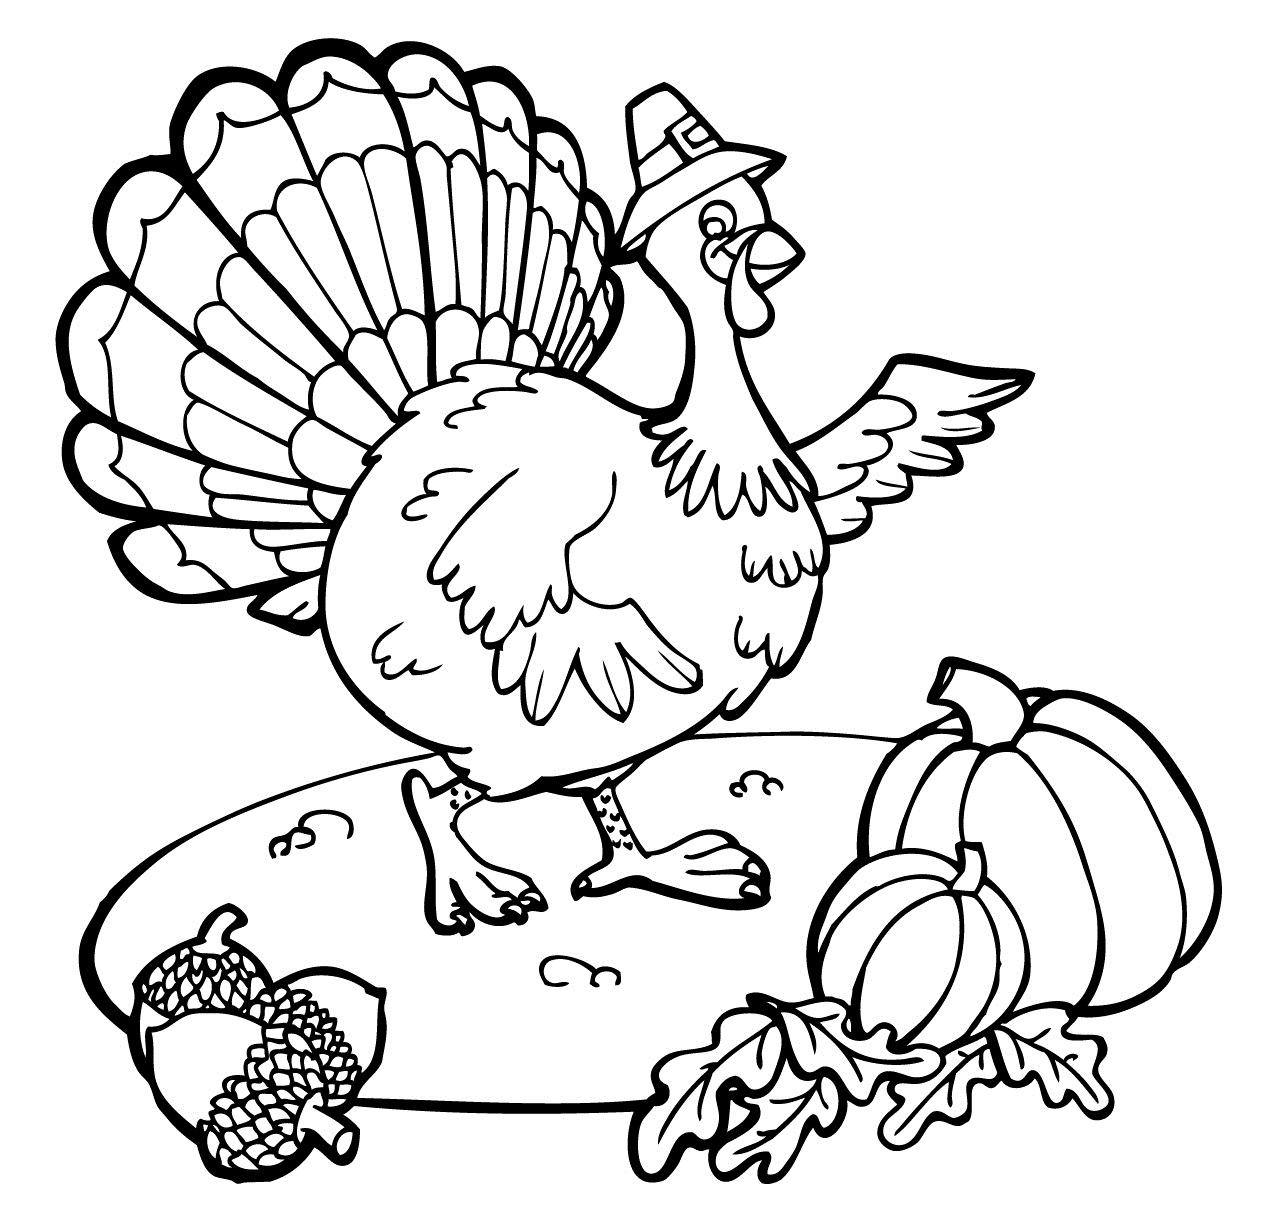 Thanksgiving Color Pages to Print 3161 1405—986 to Print Of Christmas Coloring Pages Free to Print